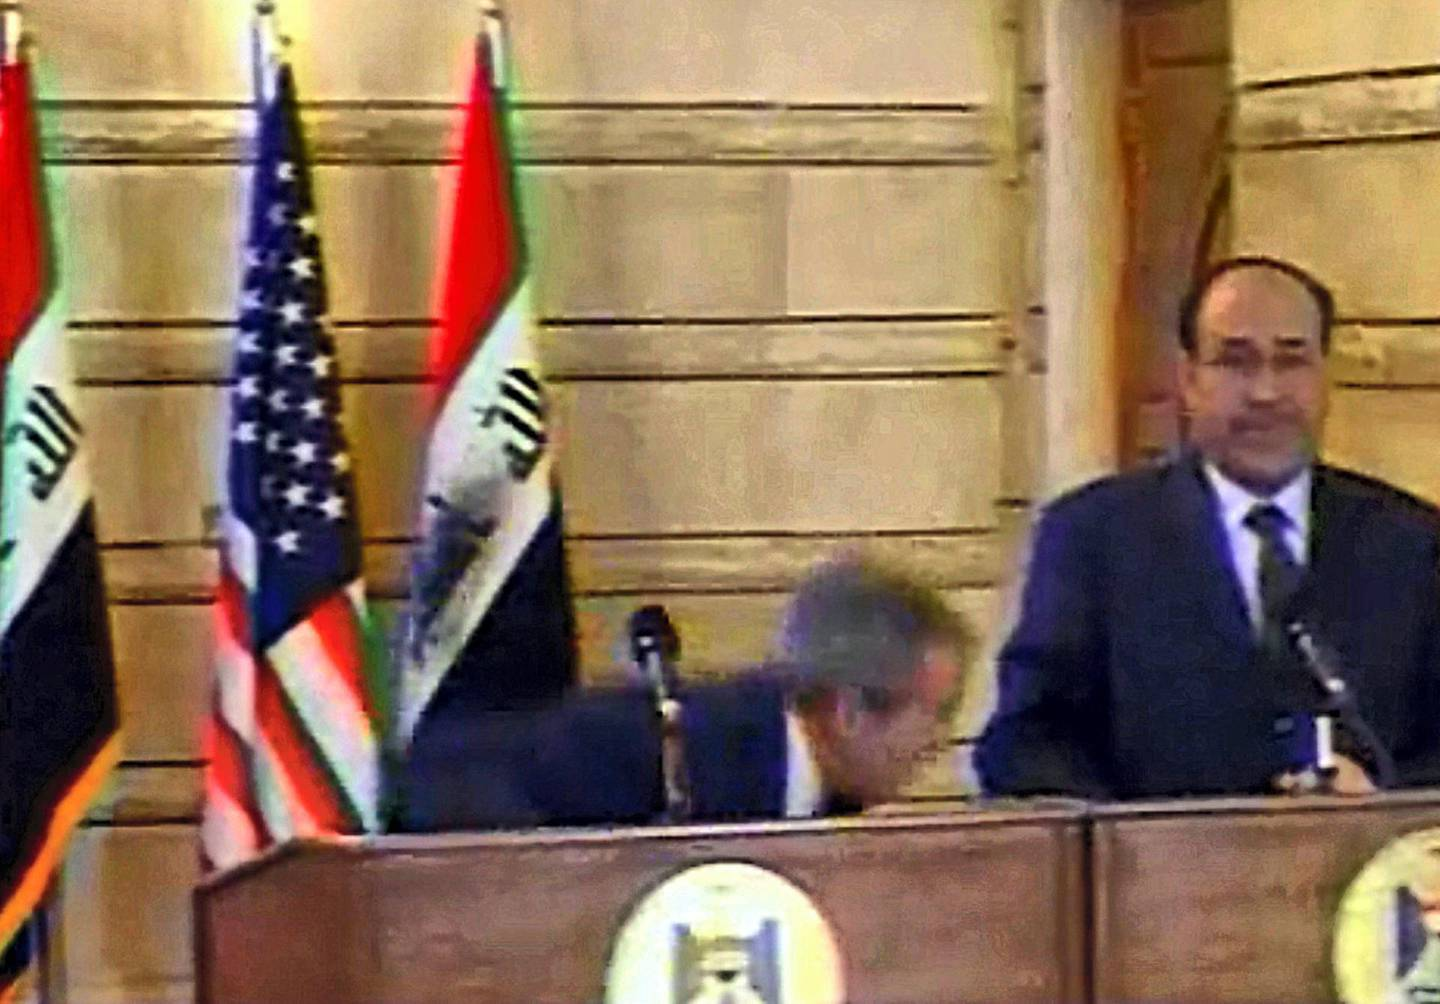 """An image grab taken from footage broadcast by the Al-Arabiya news channel shows US President George W. Bush (L) reacting as an Iraqi journalist hurls one of his shoes at him during a joint press conference with Iraqi Prime Minister Nuri al-Maliki (R) in Baghdad on December 14, 2008. Muntazer al-Zaidi from Al-Baghdadia channel hurled his shoes and an insult at Bush, without hitting him, as the US president was shaking hands with the Iraqi premier at his Baghdad office today. Zaidi jumped up, shouting: """"It is the farewell kiss, you dog,"""" and threw his shoes one after the other towards Bush. Maliki made a protective gesture towards the US president, who ducked and was not hit. AFP PHOTO/DSK == RESTRICTED TO EDITORIAL USE == / AFP PHOTO / AL-ARABIYA"""